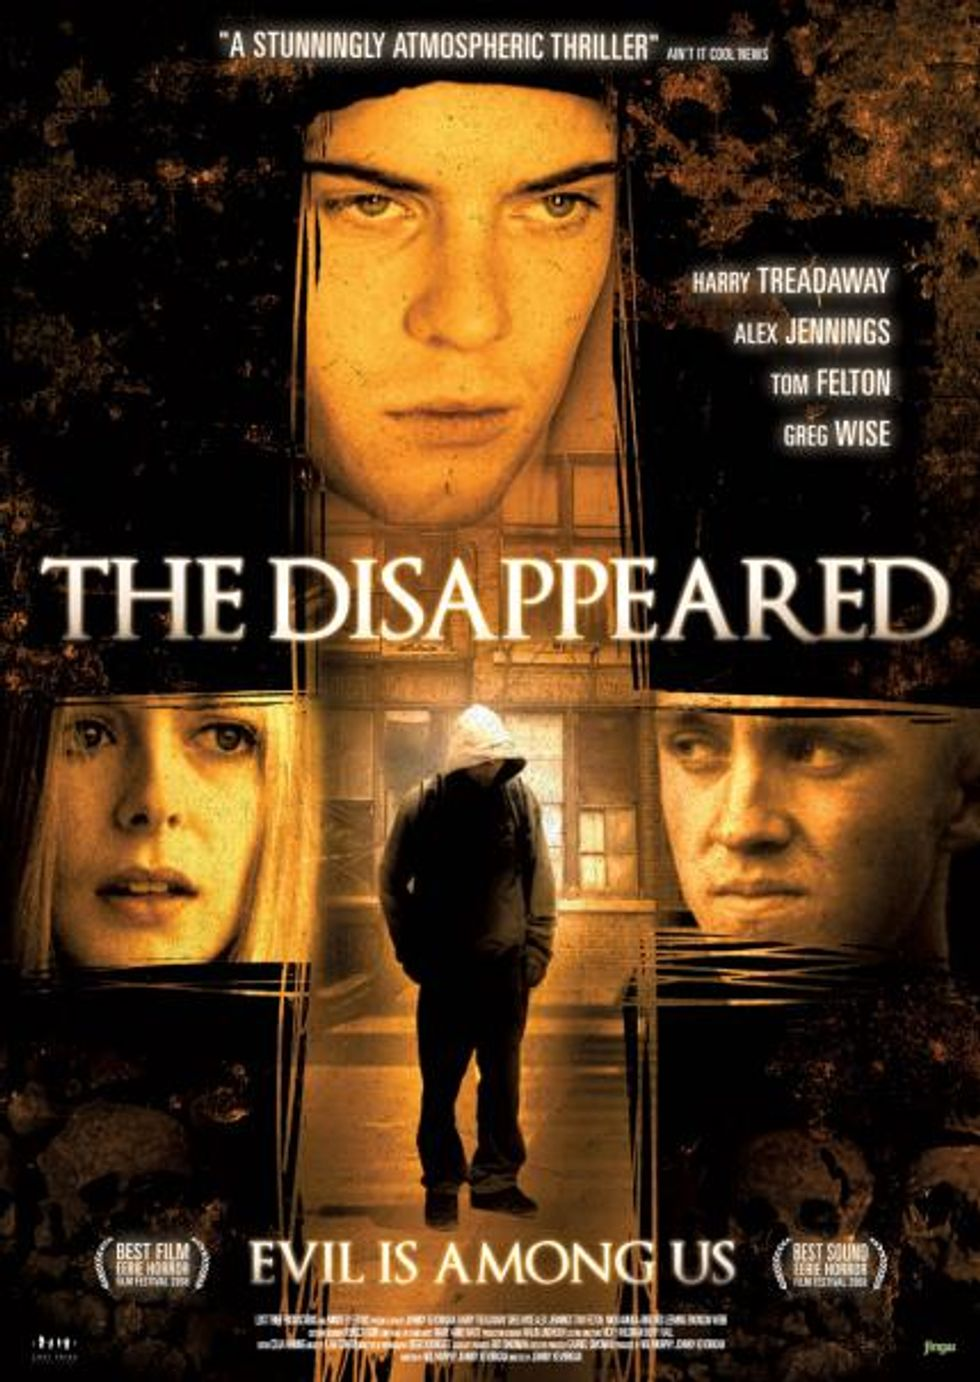 The Disappeared On DVD!